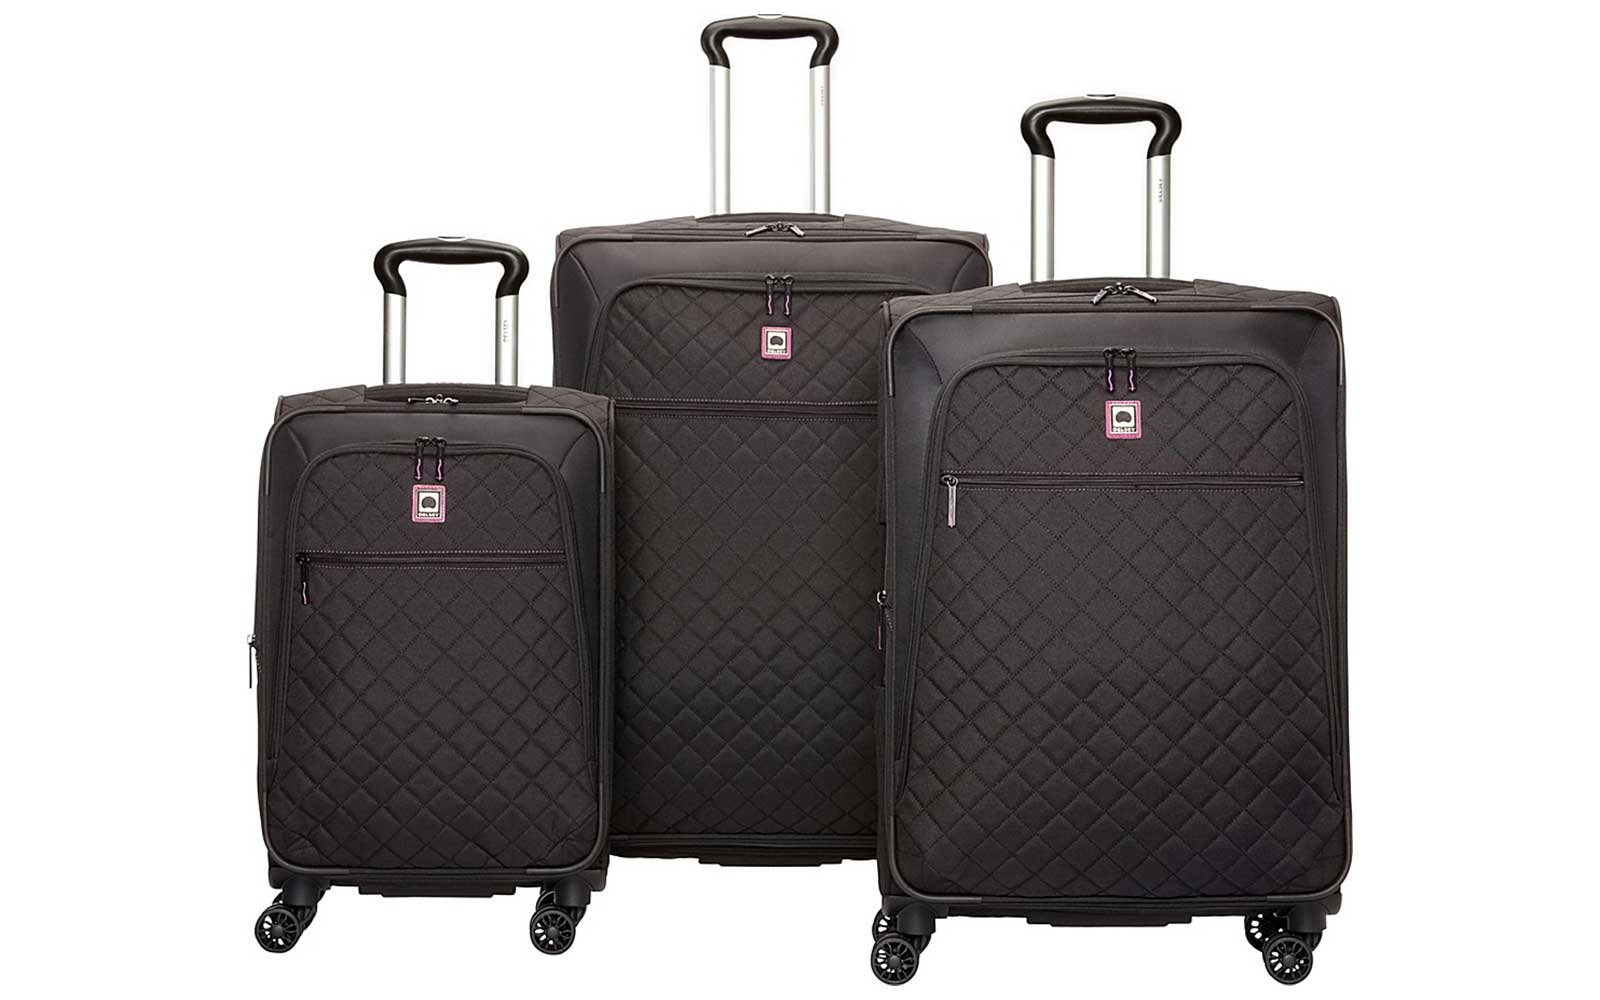 Delsey Black Quilted Luggage Set